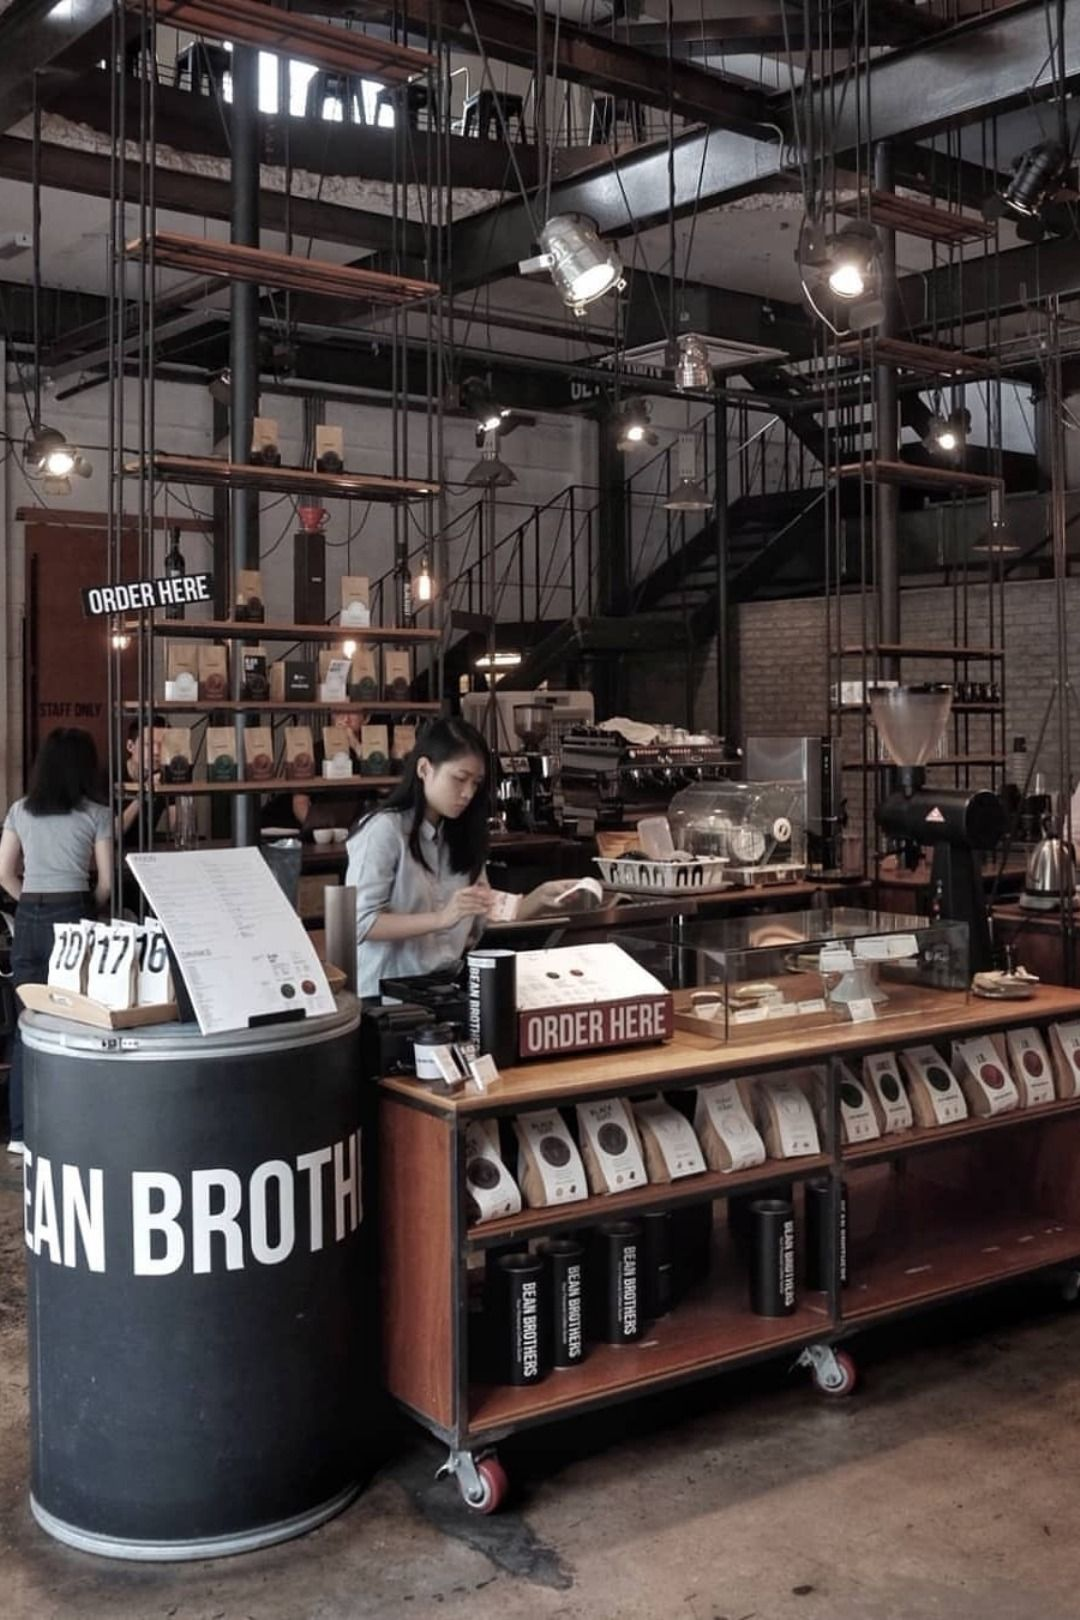 One of the Best Coffee Shops in Malaysia! Keep following